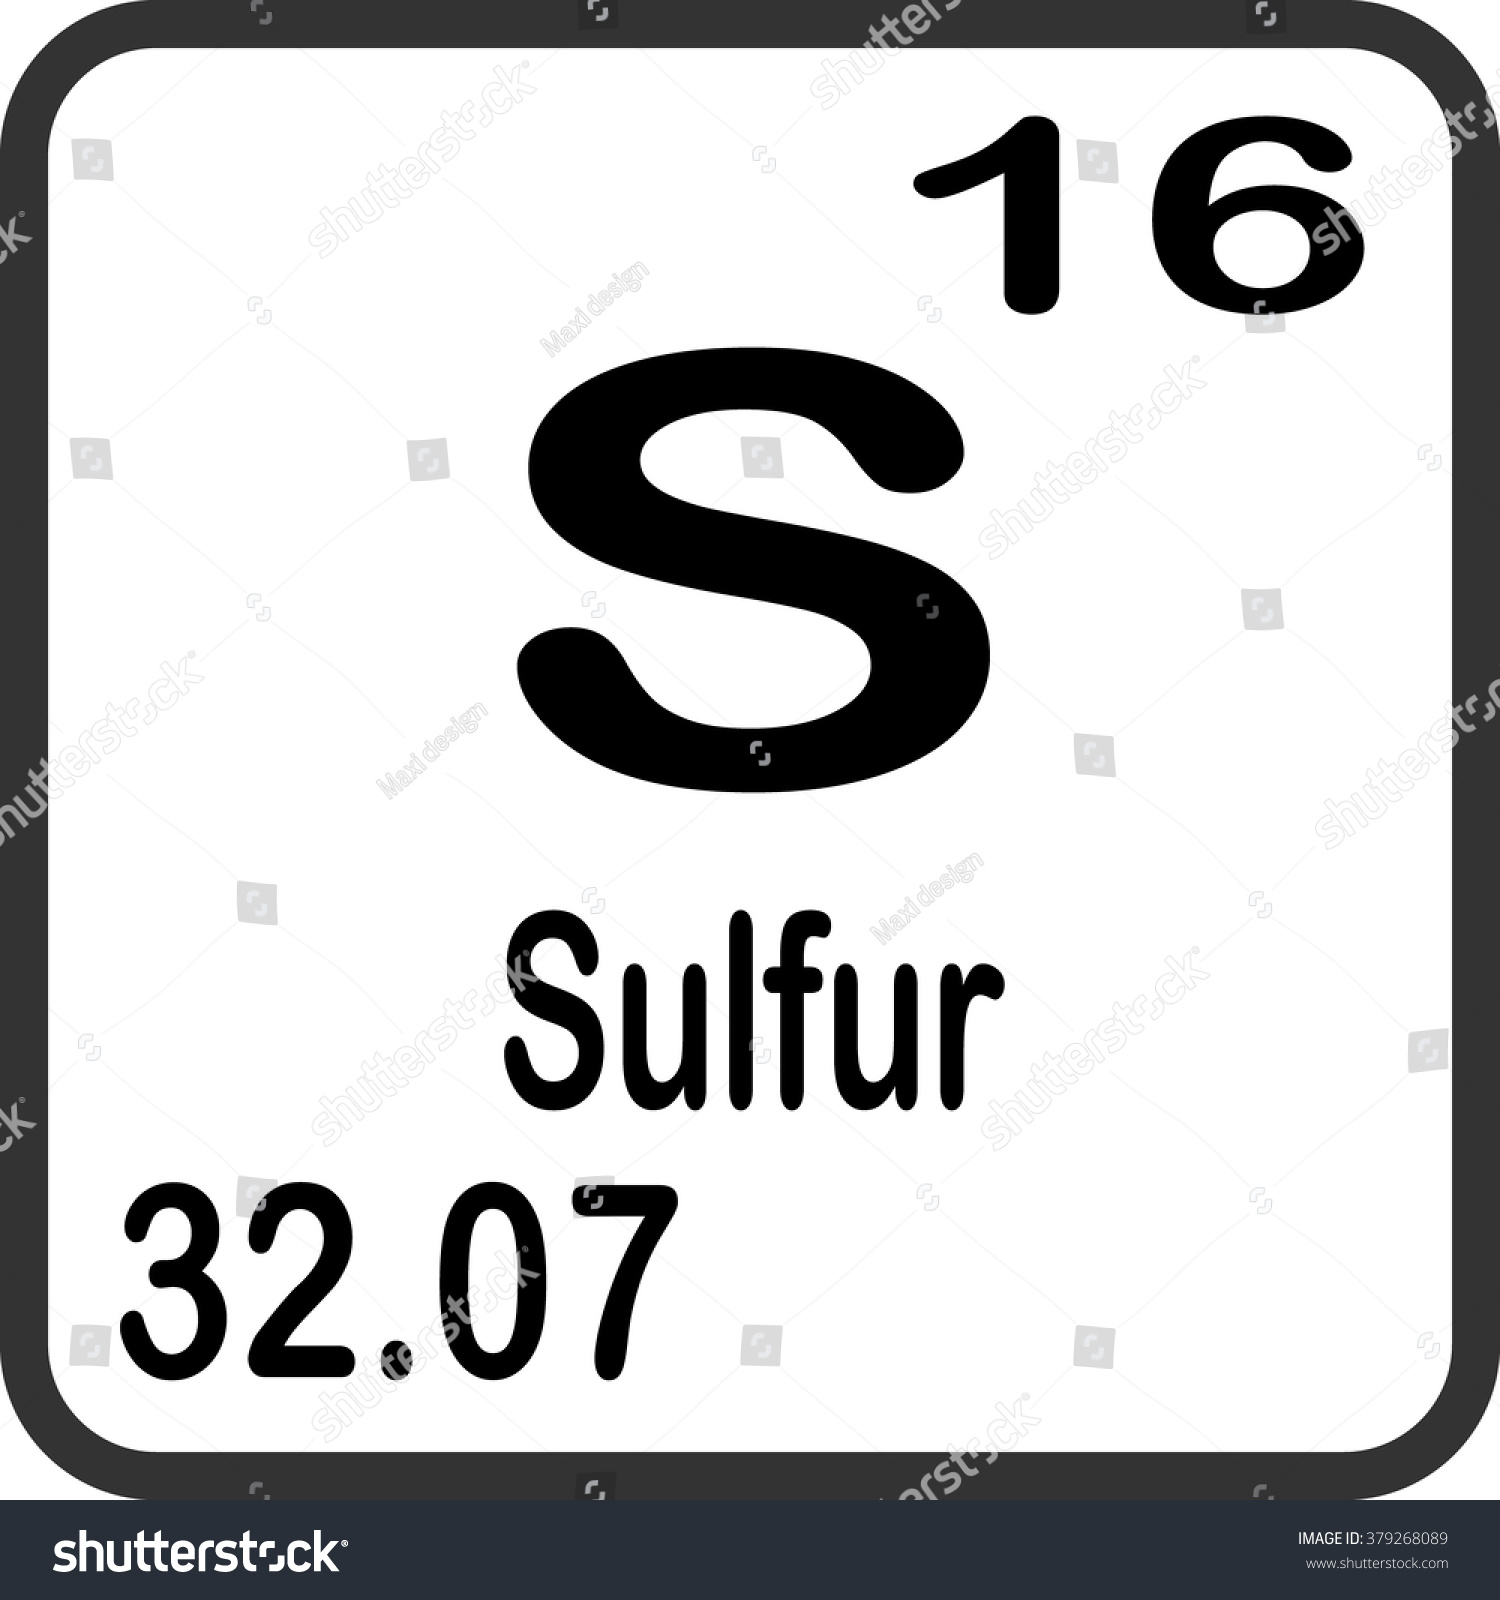 Periodic table elements sulfur stock vector 379268089 shutterstock periodic table of elements sulfur urtaz Image collections